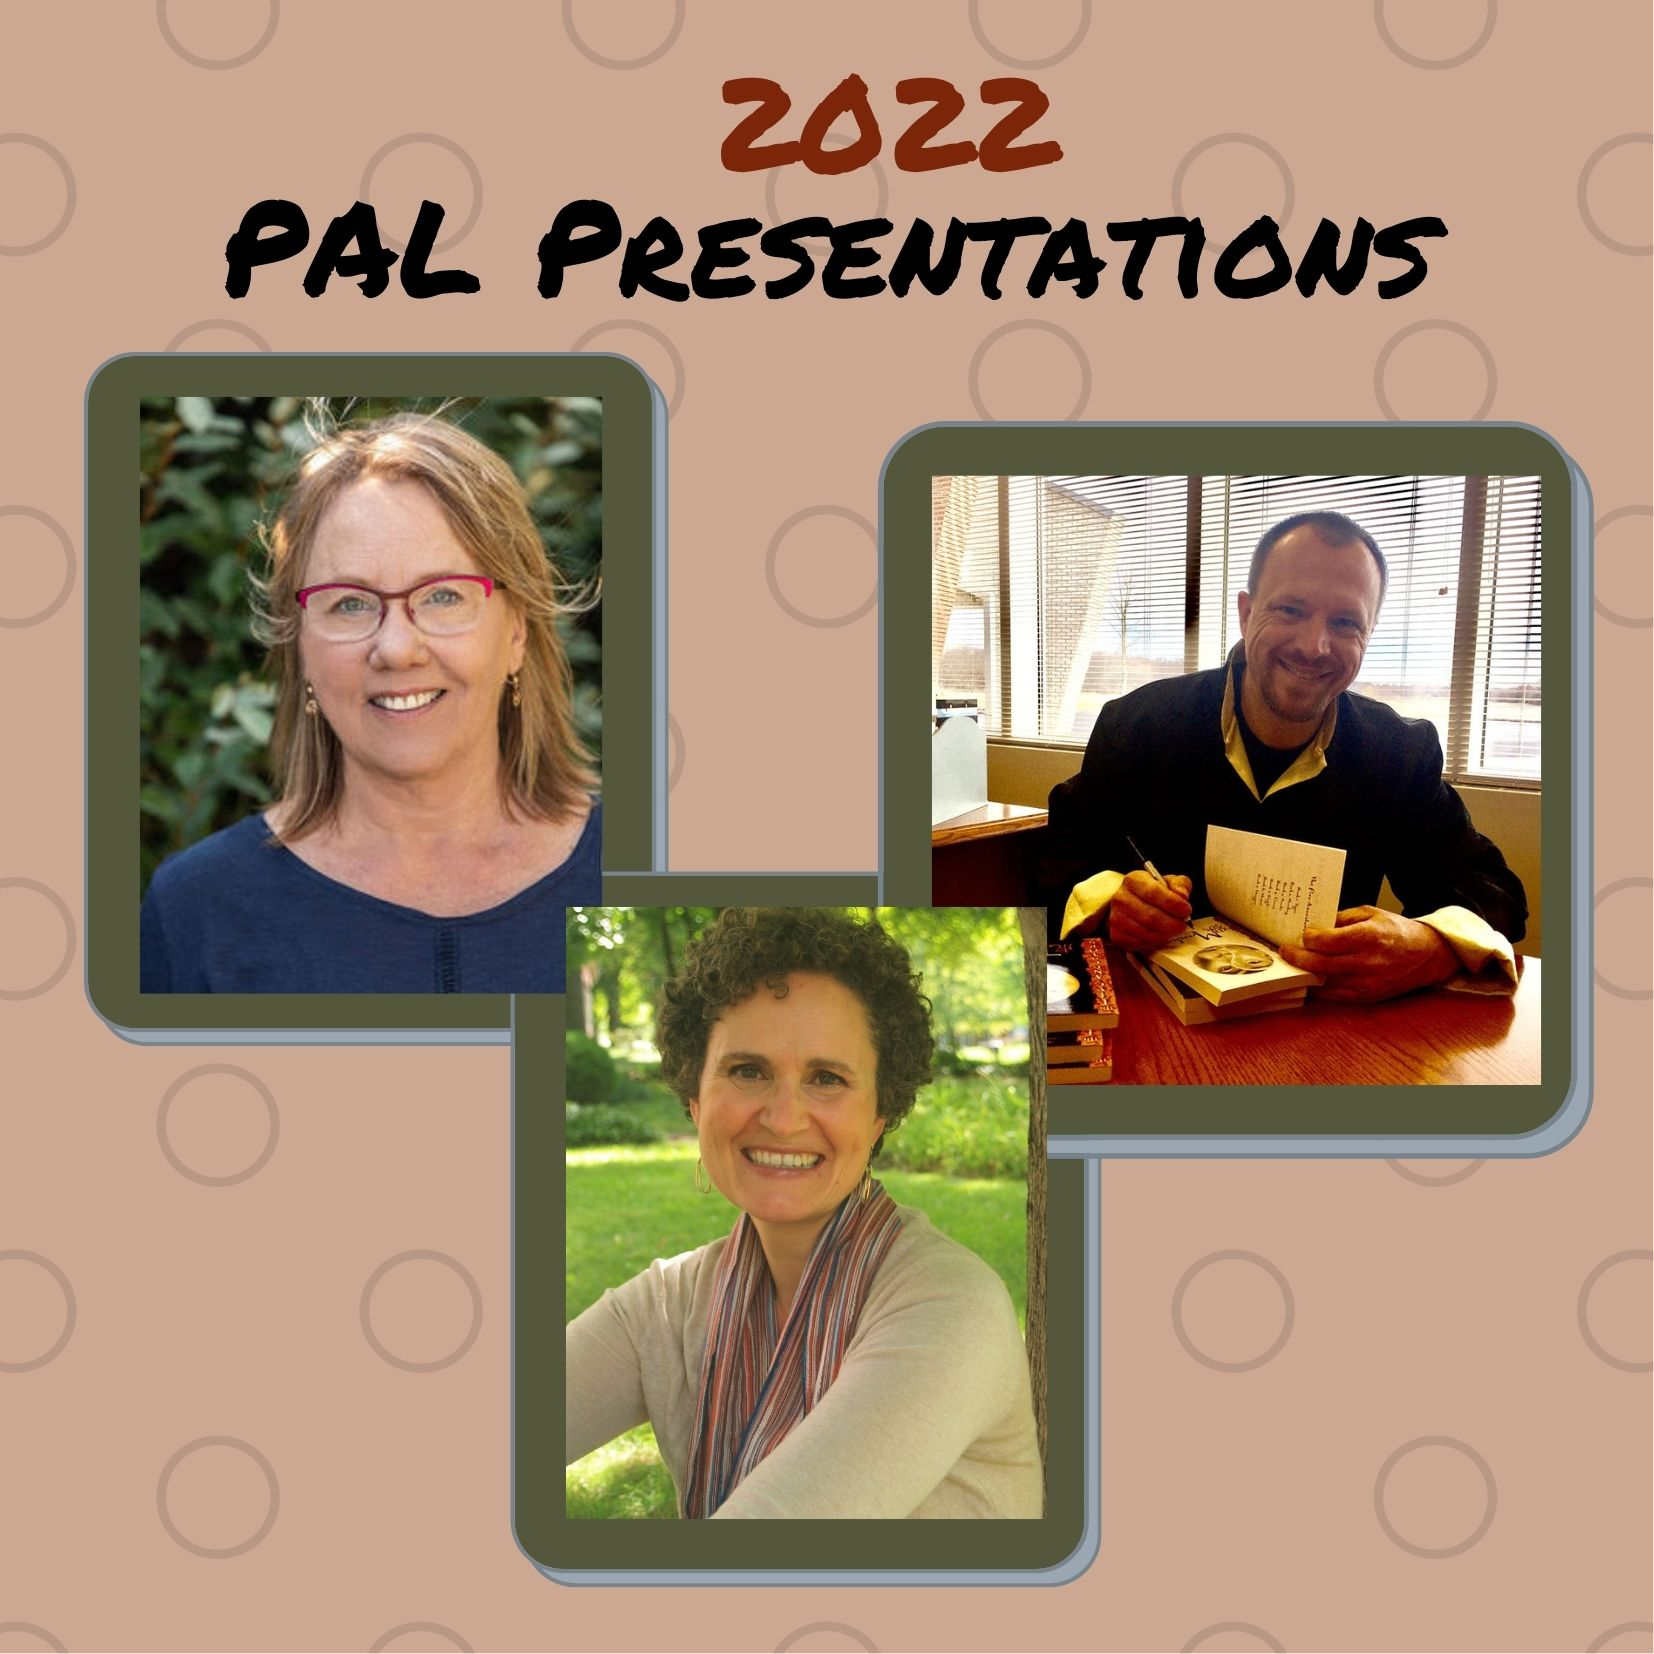 Due to the popularity of the 2021 PAL Presentations, and thanks to another generous grant from SCBWI, we are please to offer another set of these free-to-all-SCBWI-members webinars (and only $10 for non-members)! This round, we have the following wonderful creators on these dates: Sharon Vargo, author-illustrator - March 5, 2022 Jeff Stone, author, MG & YA - June 11, 2022 Janna Matthies, author, PB - August 27, 2022 Join us!